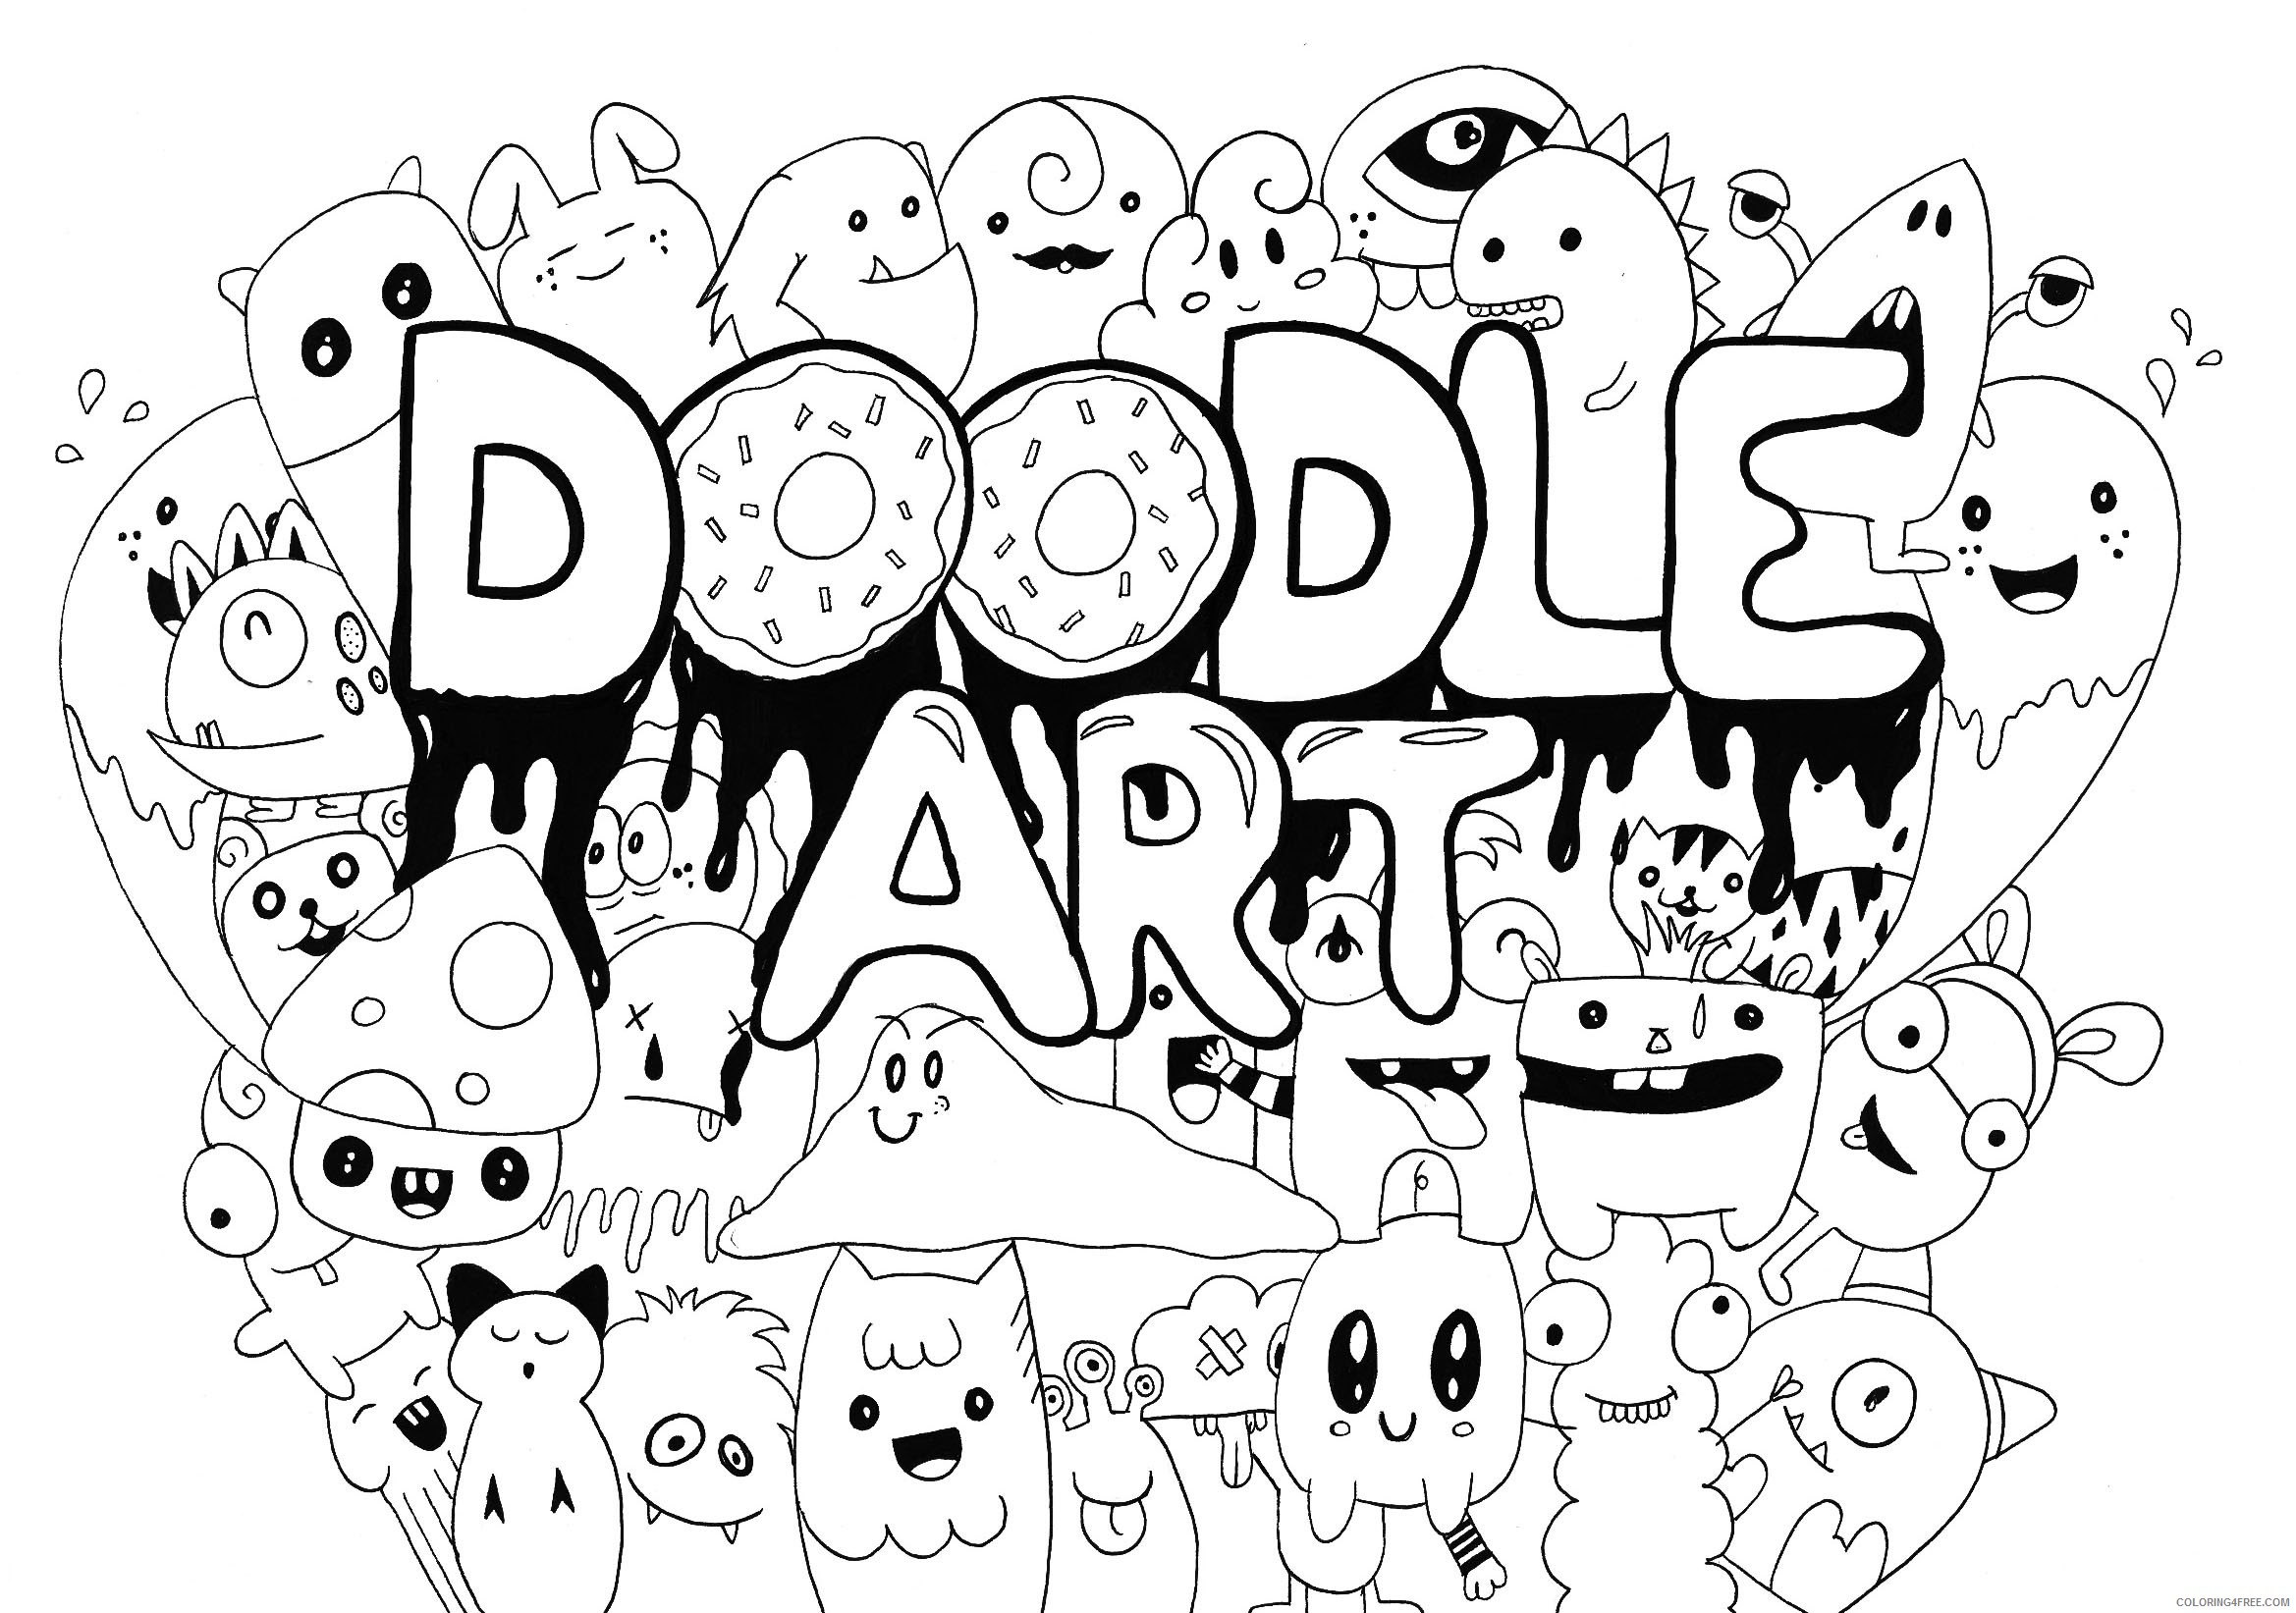 doodle art coloring pages Coloring4free